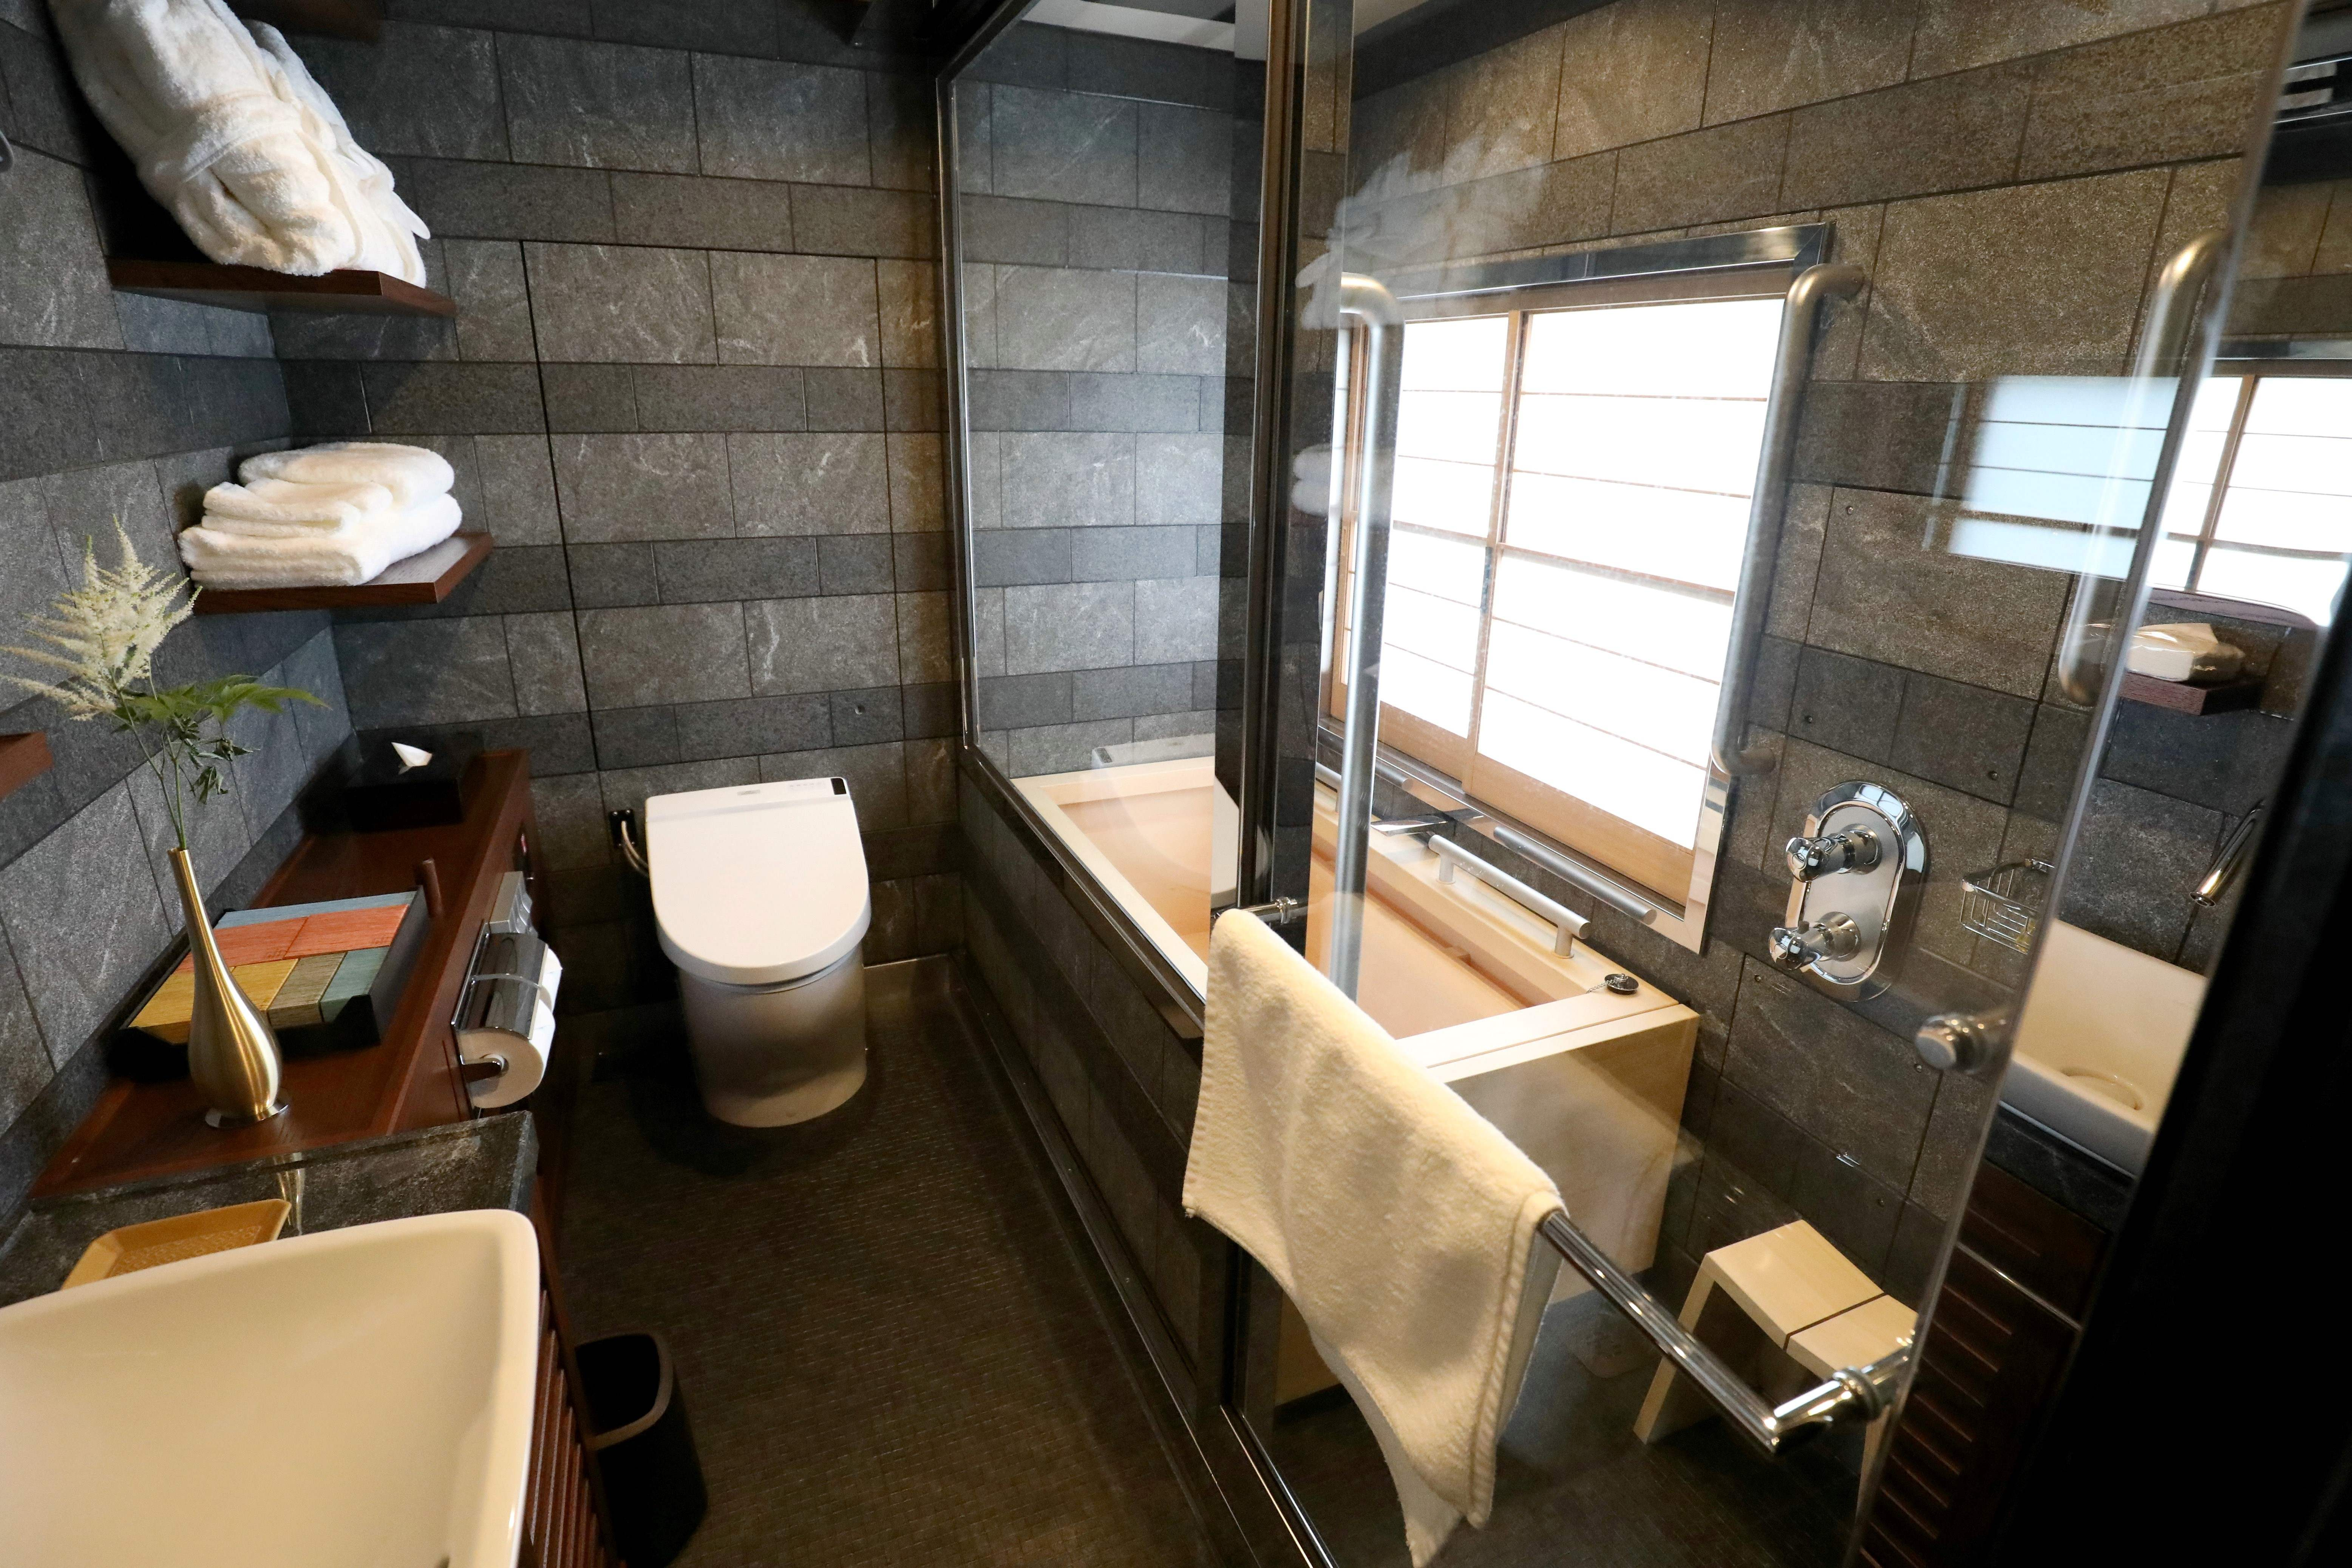 The bathroom of the Shiki-Shima Suite of the Train Suite Shiki-Shima.